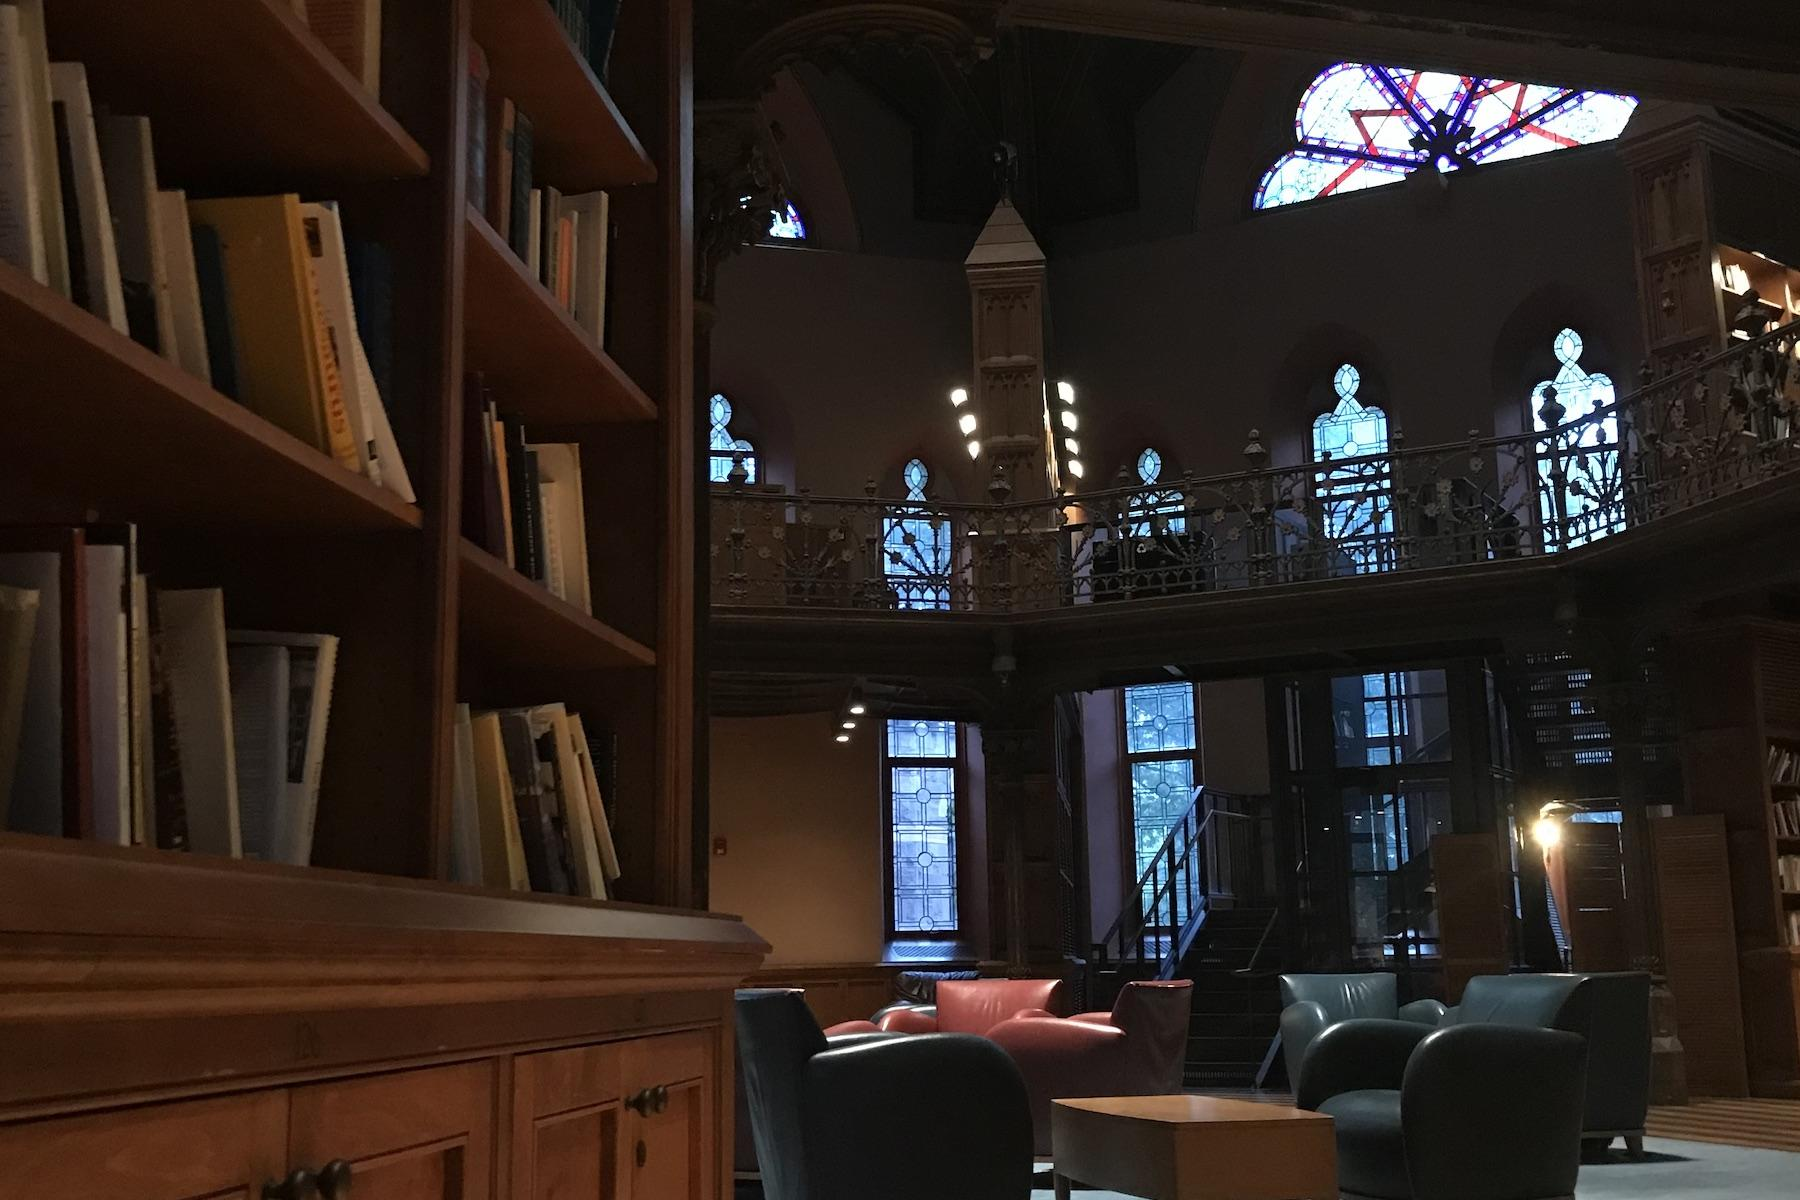 Picture of Chancellor Green Library, a room with bookshelves, chairs, and stained glass windows